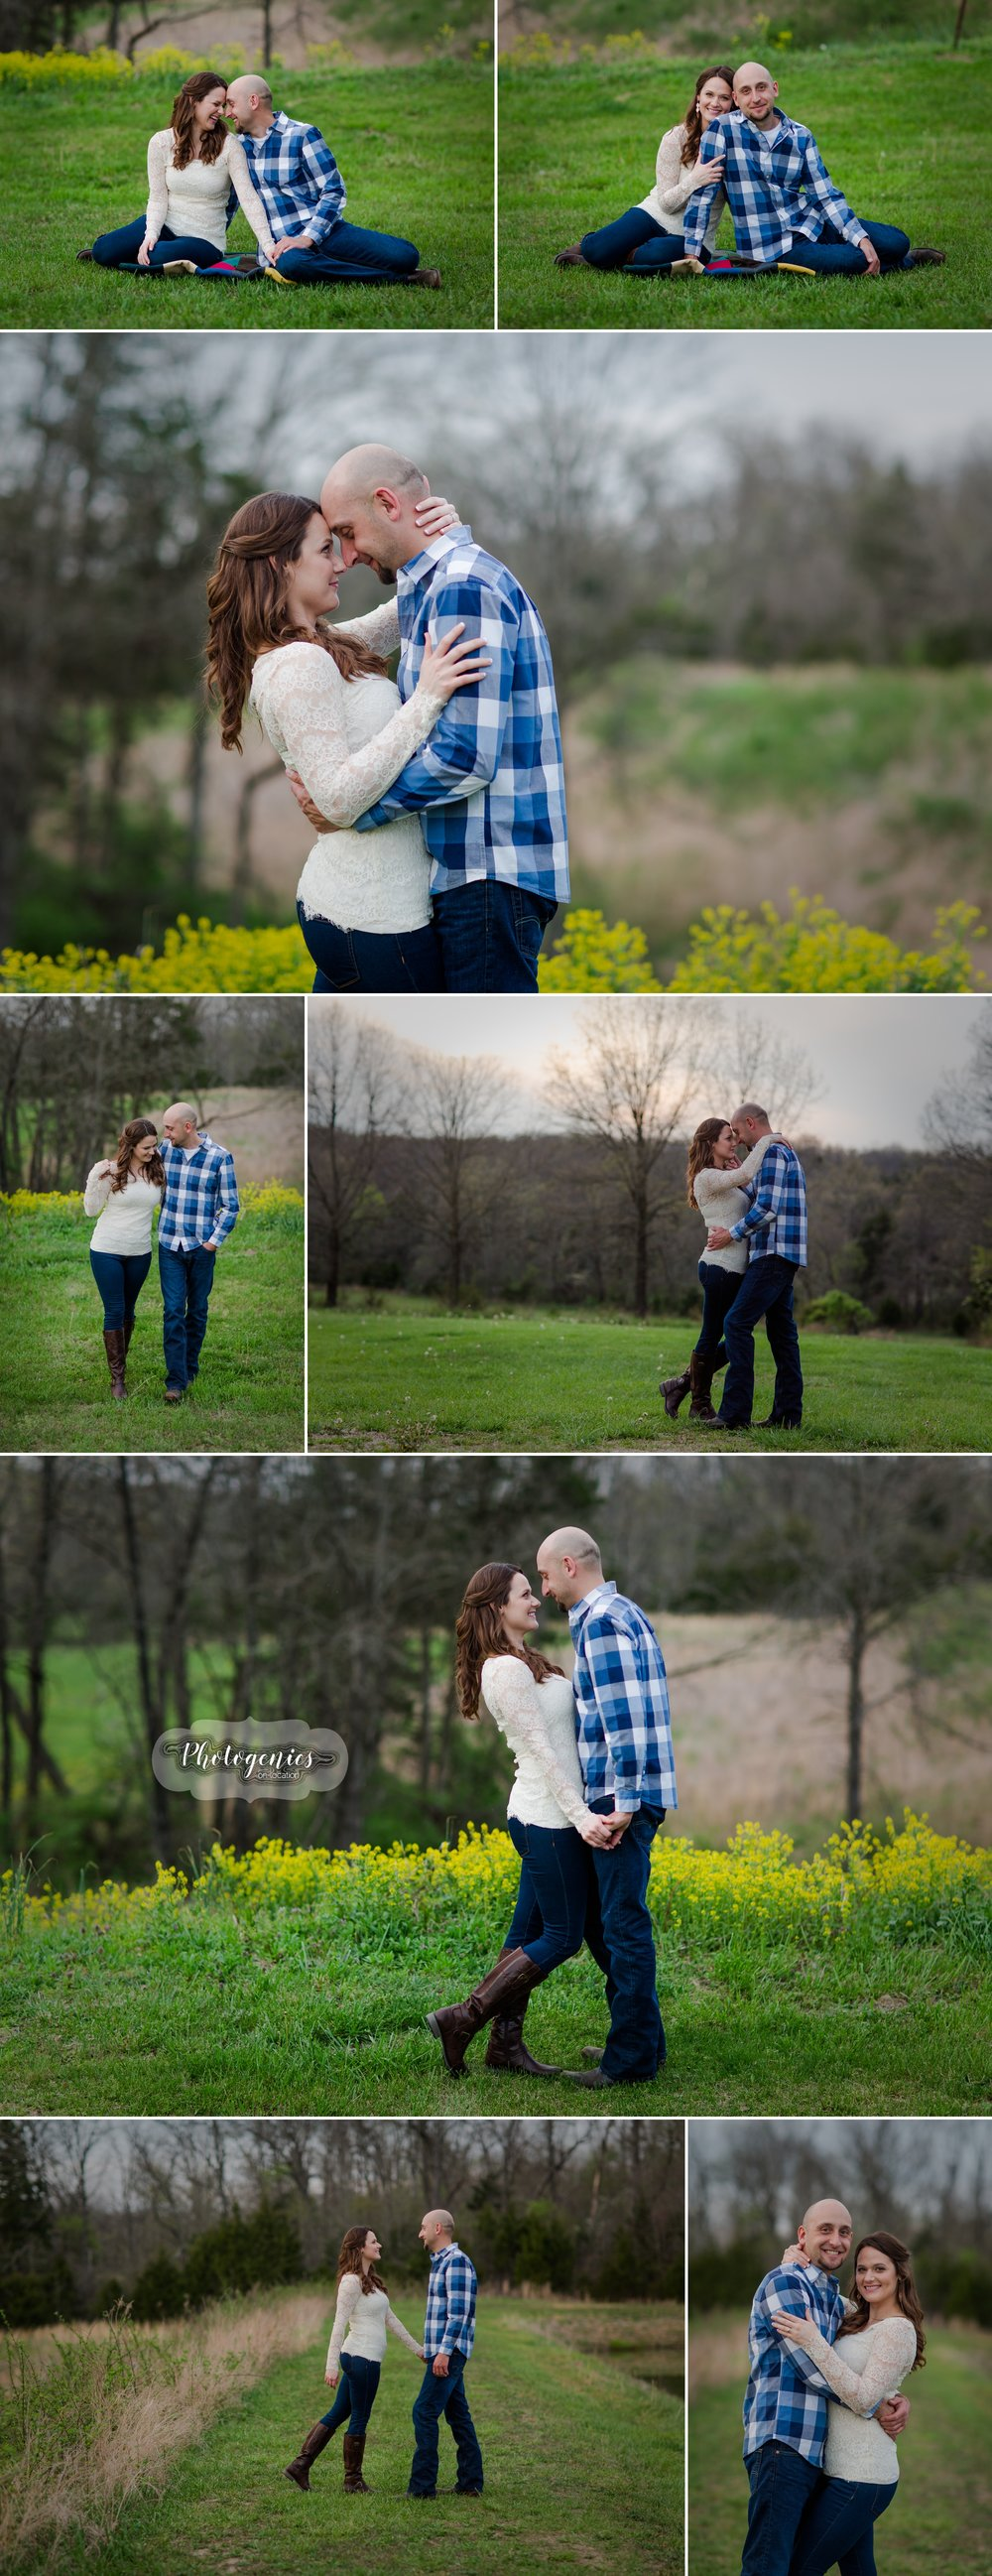 engagement_session_spring_country_creek_water_poses_evening_light_lake_sunset_ideas_simple_variety_unique 1